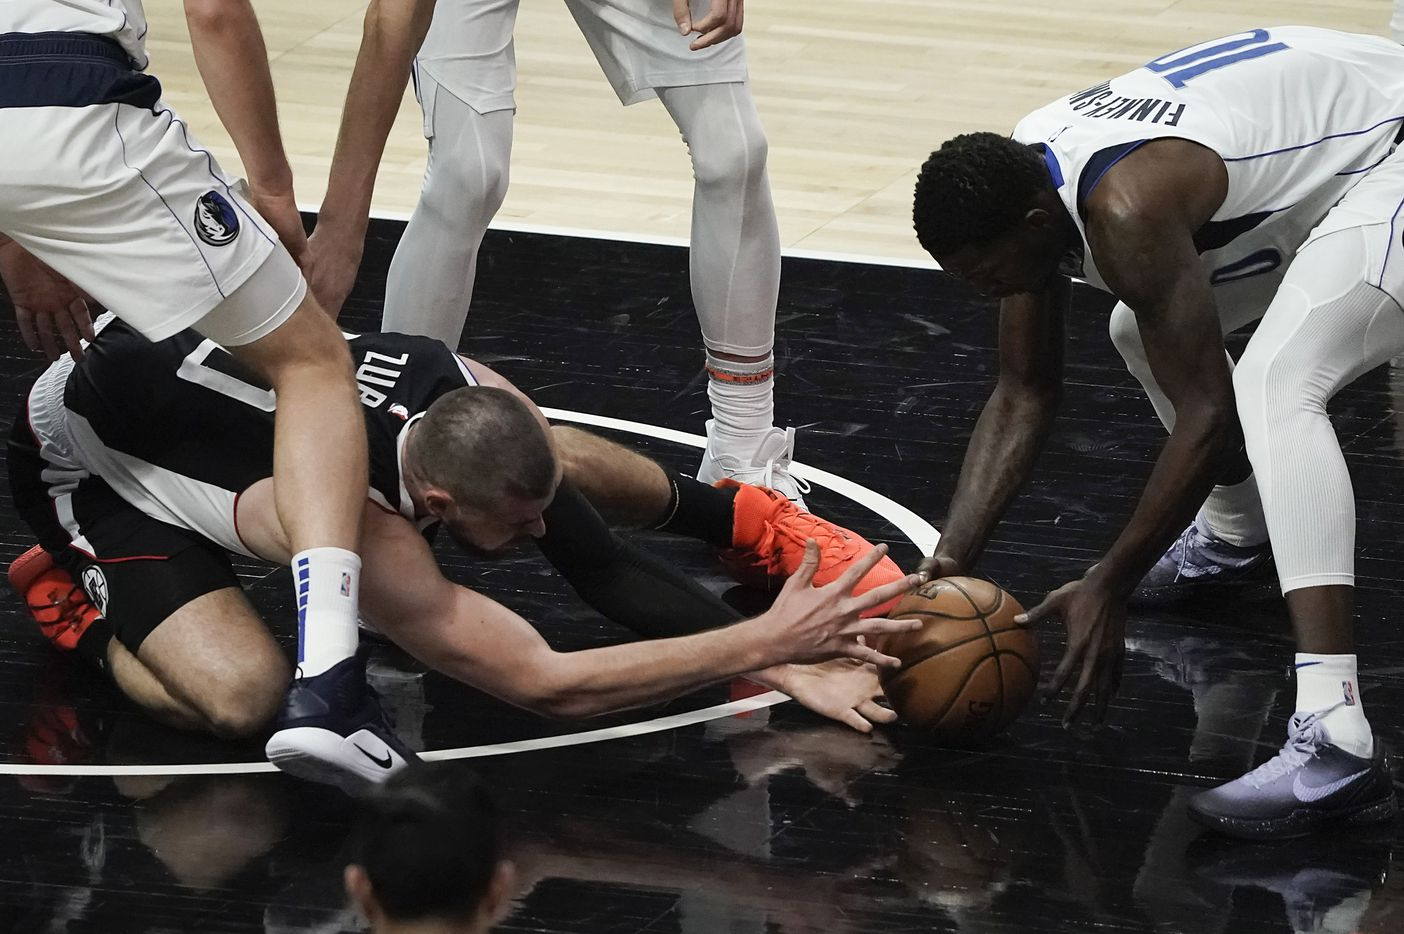 Dallas Mavericks forward Dorian Finney-Smith (10) grabs a loose ball from LA Clippers center Ivica Zubac (40) during the first half of an NBA playoff basketball game at Staples Center on Saturday, May 22, 2021, in Los Angeles.